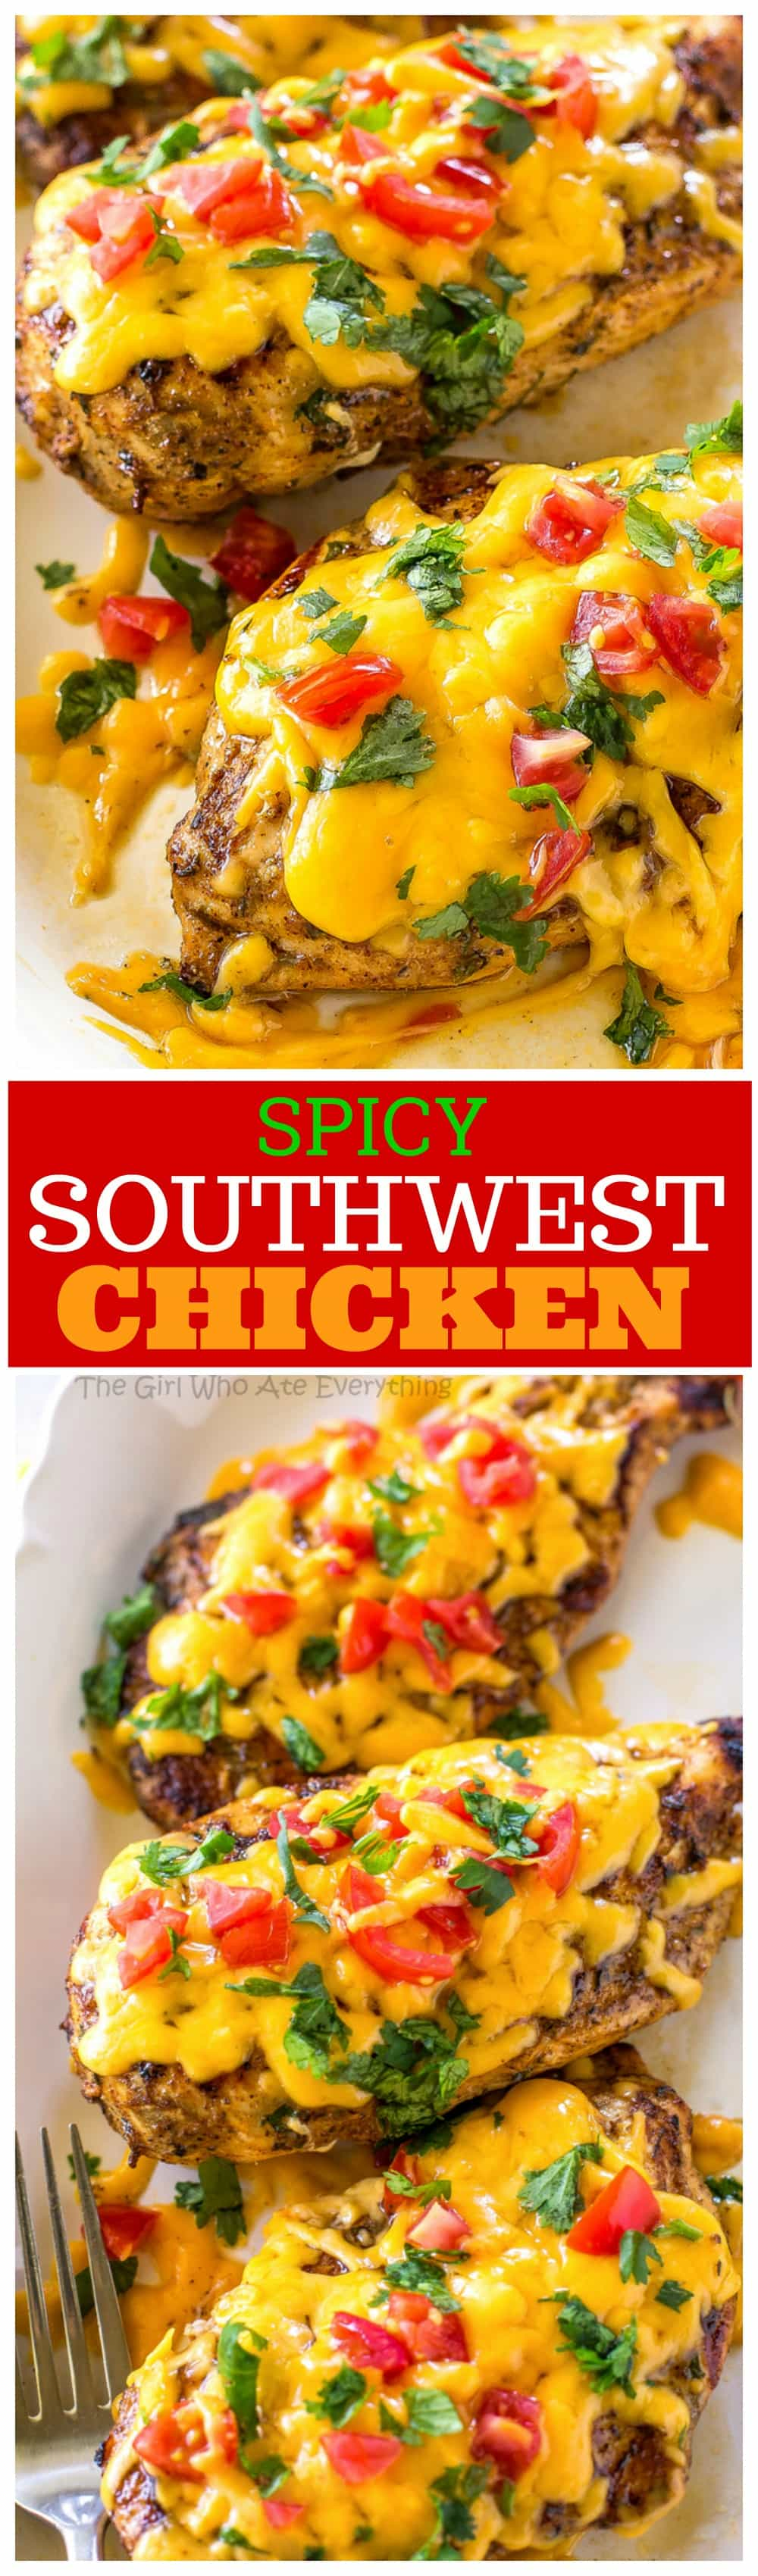 Spicy Southwest Chicken - marinated in spicy seasonings, grilled, and topped with cheese and tomatoes. the-girl-who-ate-everything.com